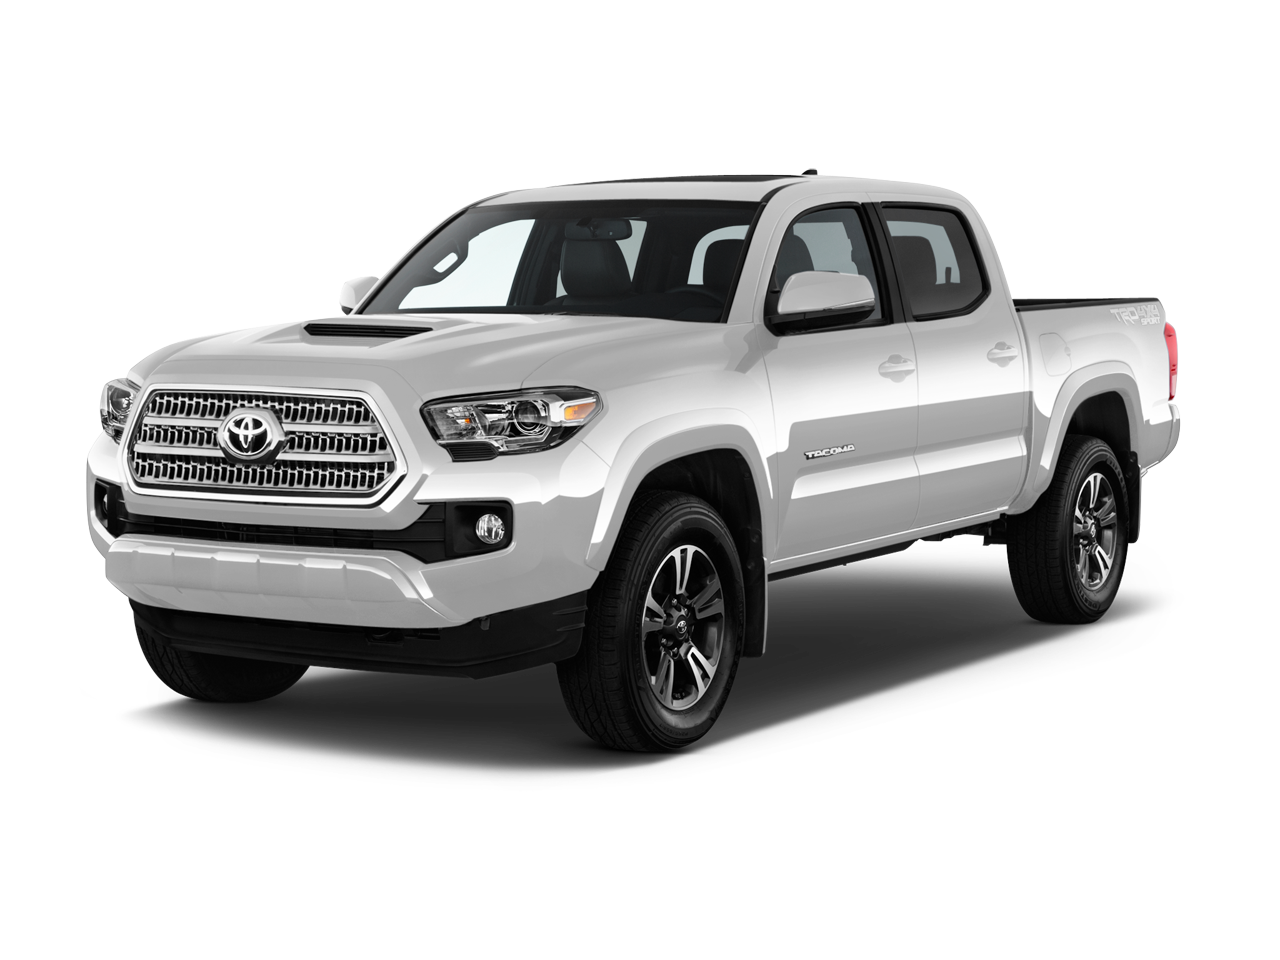 new 2017 toyota tacoma trd sport double cab 6 39 bed v6 4x4 at near morristown nj toyota of. Black Bedroom Furniture Sets. Home Design Ideas